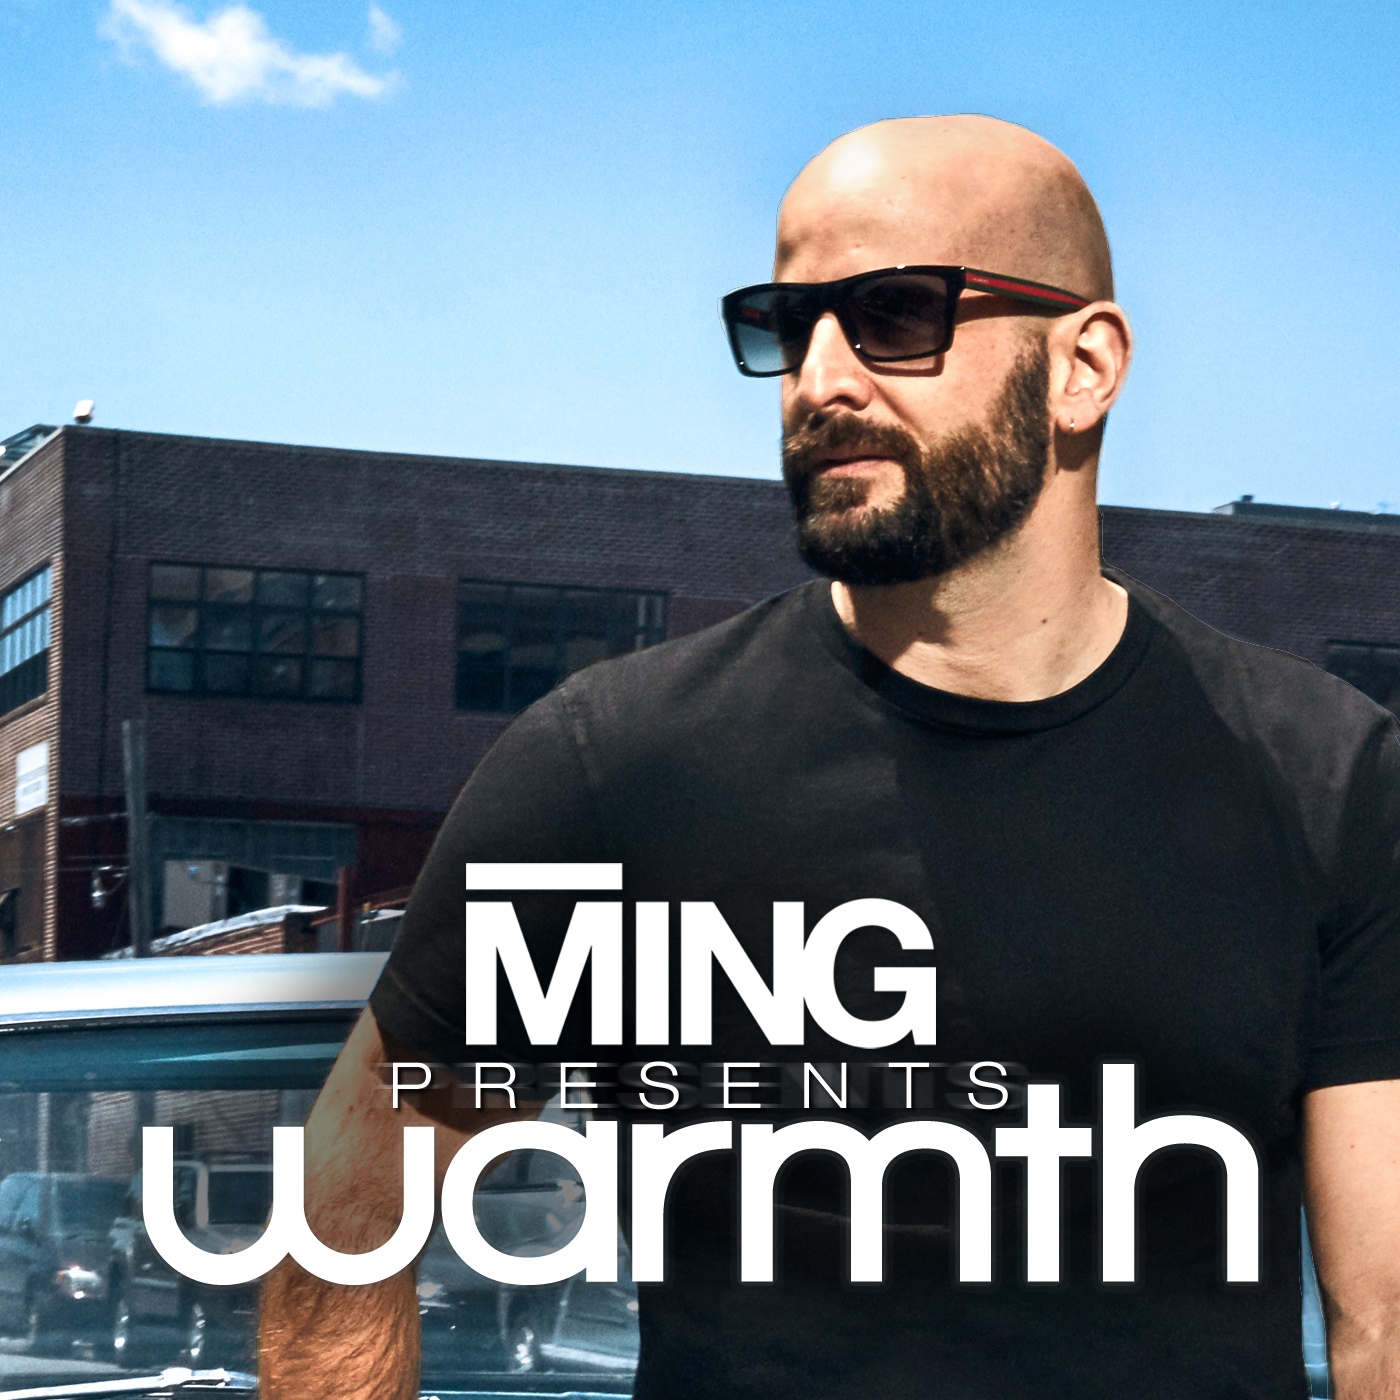 MING Presents Warmth Radio Show. Grammy-nominated remixer, producer, writer, & international DJ